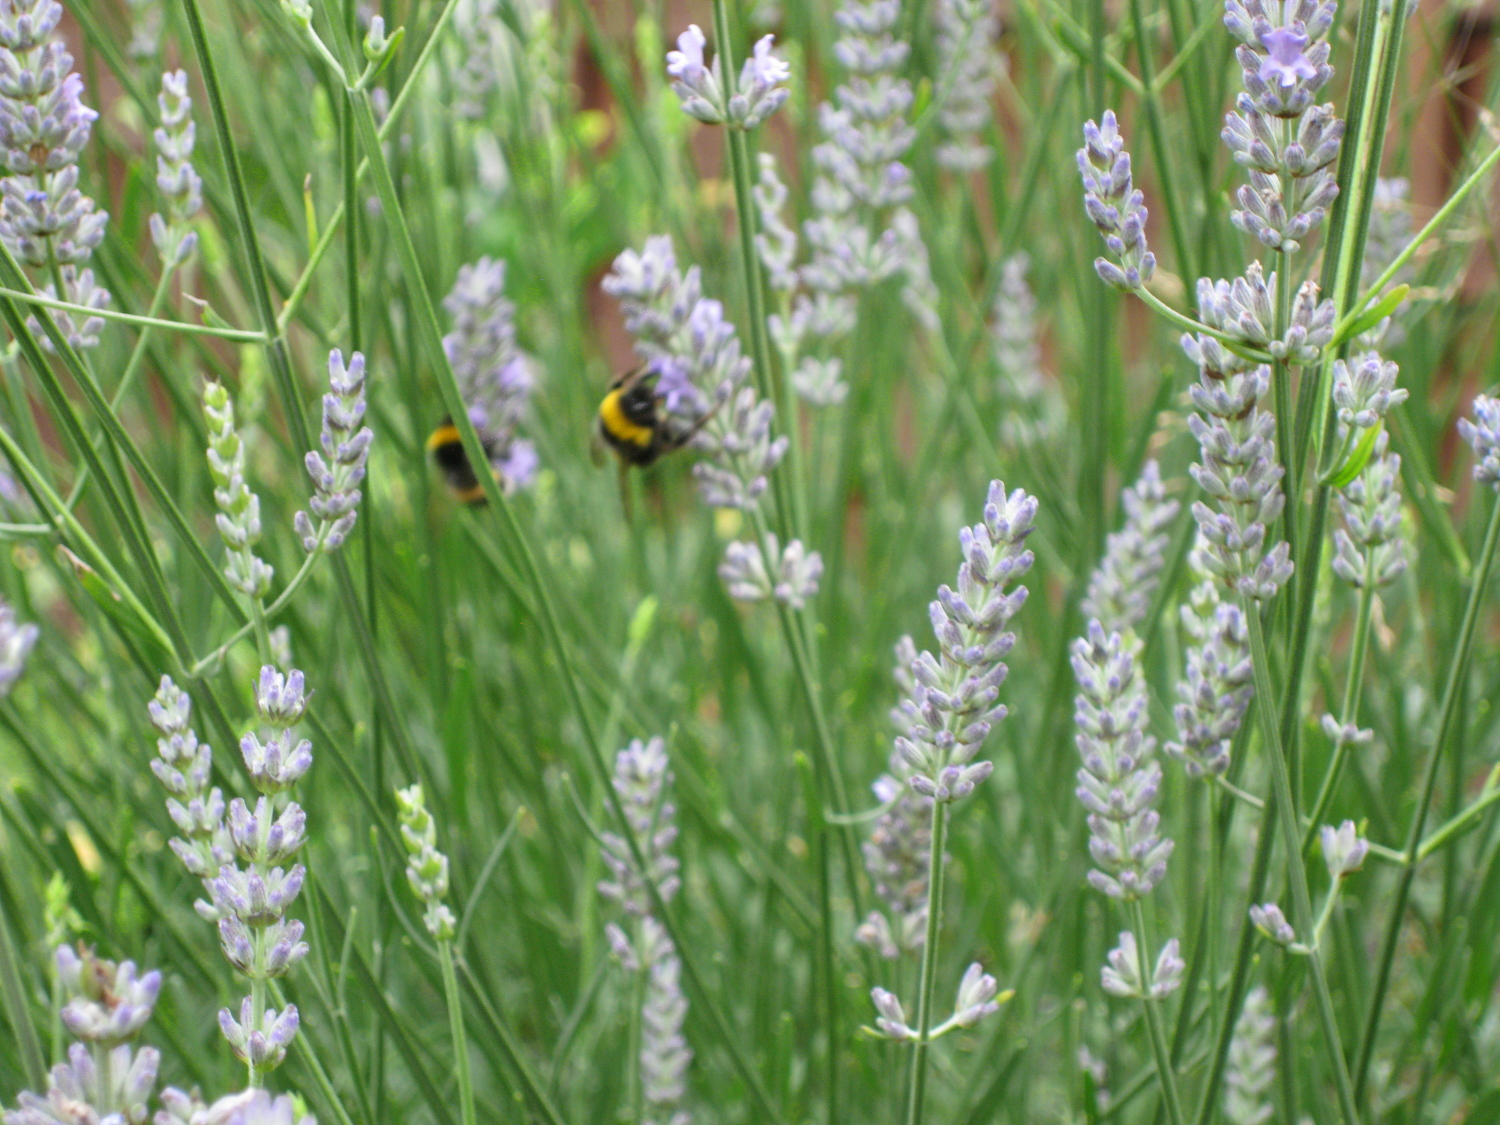 Bumble Bees on Lavender